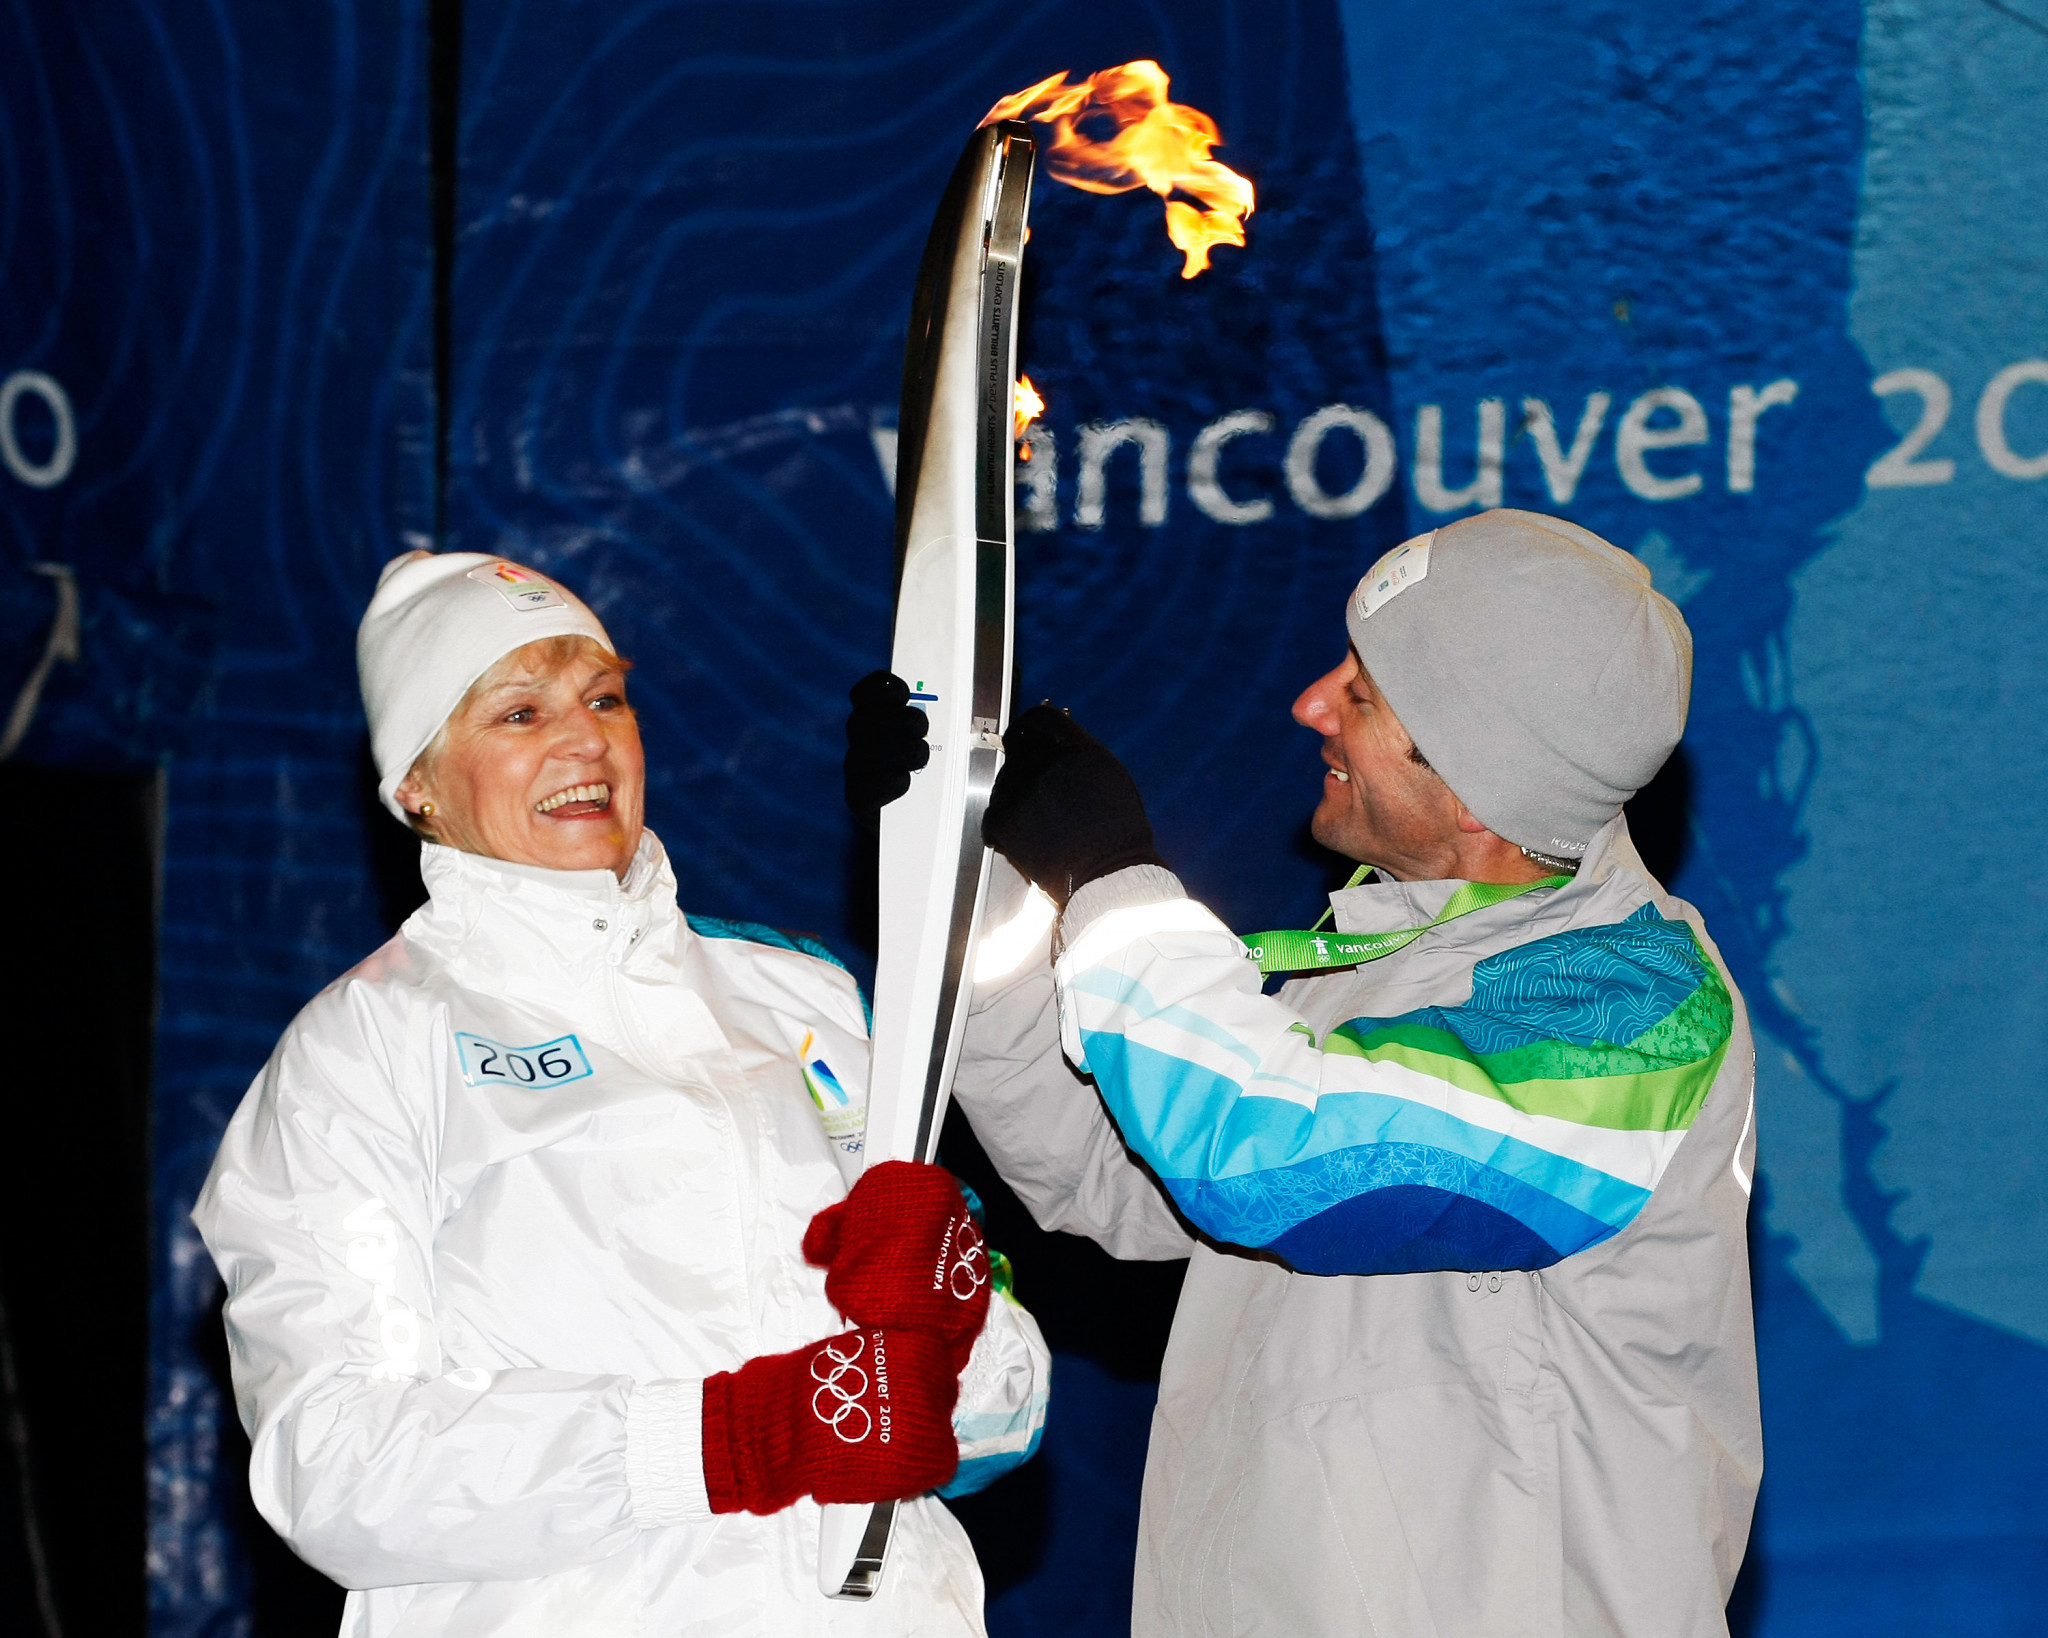 Veteran rower Guylaine Bernier, pictured as a Torchbearer ahead of the Vancouver Winter Olympics in 2010, is set to be inducted into the Hall of Fame ©Getty Images